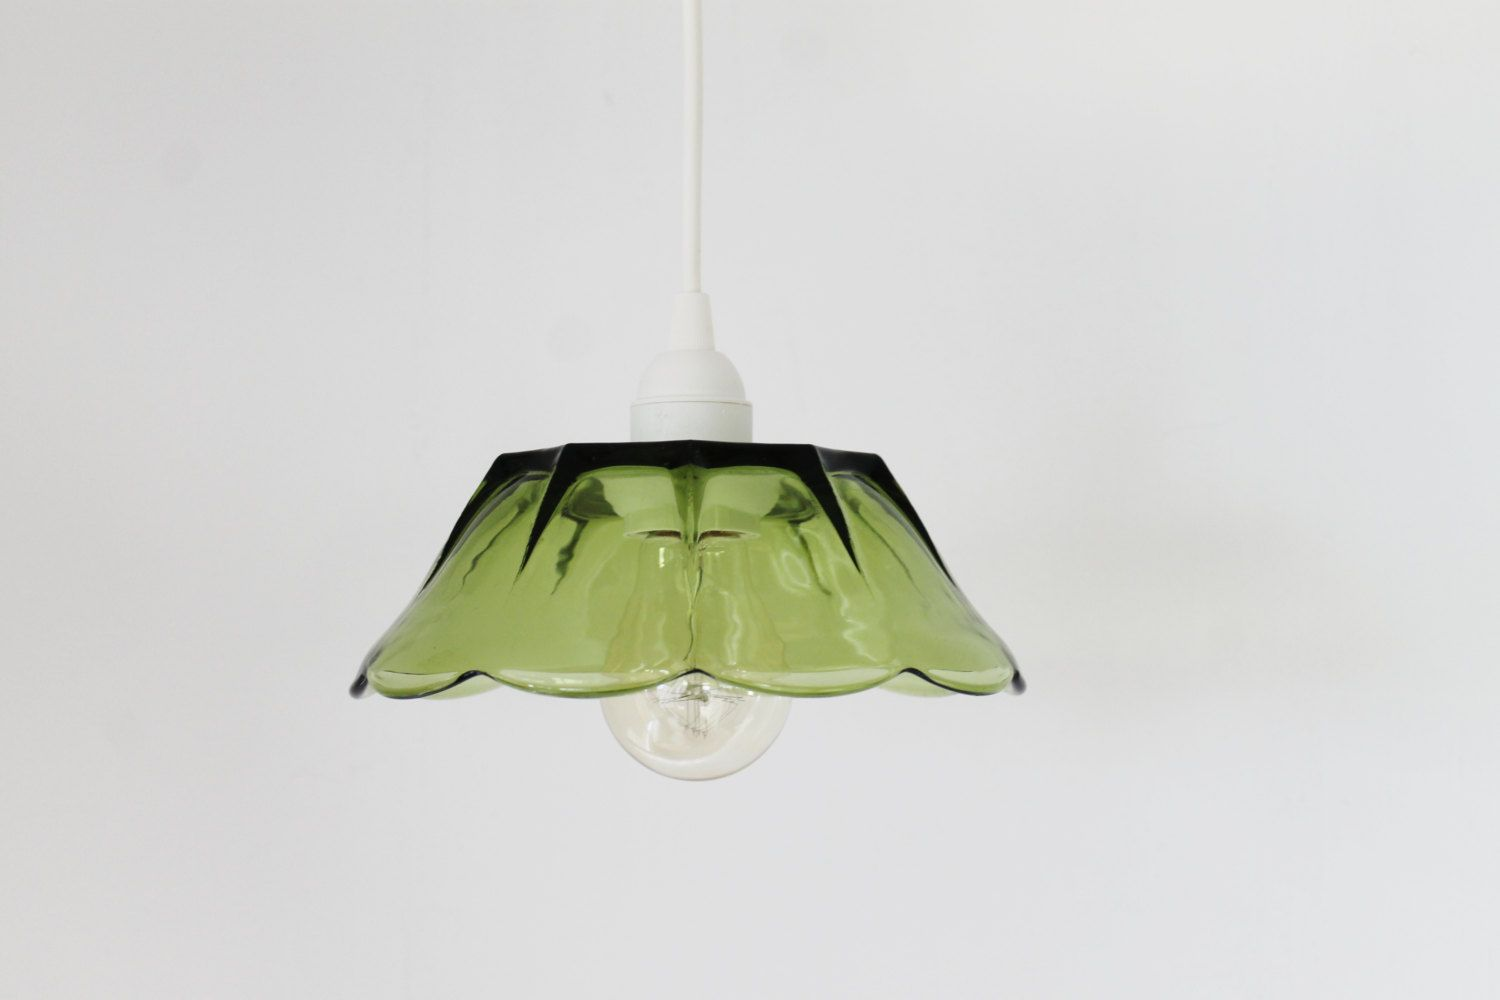 Leaf Upcycled Hanging Pendant Lighting Fixture Featuring A Vintage Green Gl Chip And Dip Bowl